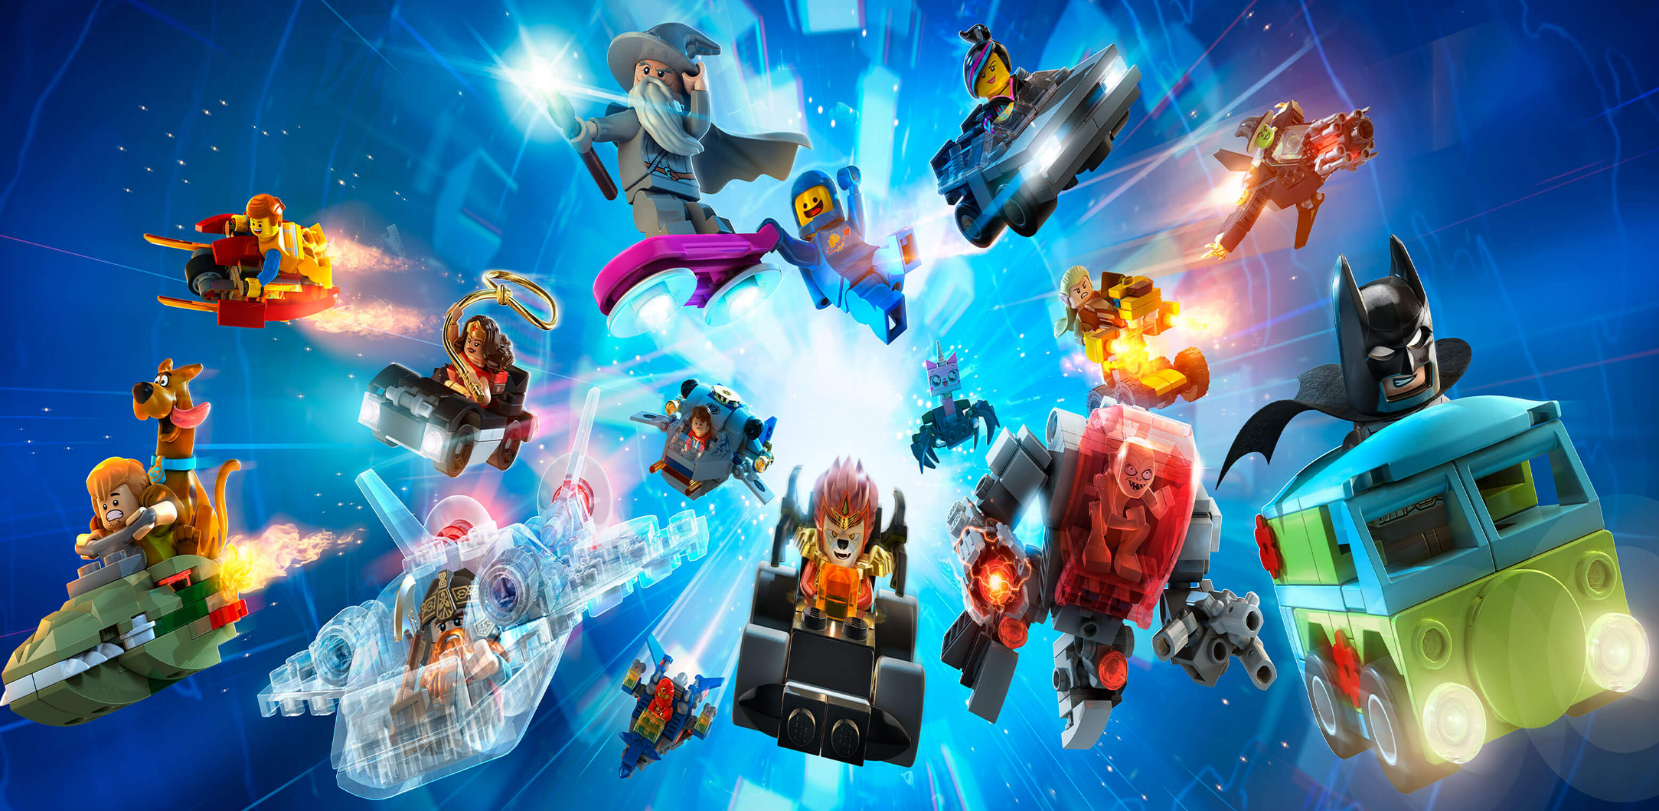 lego dimensions wallpaper  Image - New2.png | LEGO Dimensions Wiki | FANDOM powered by Wikia